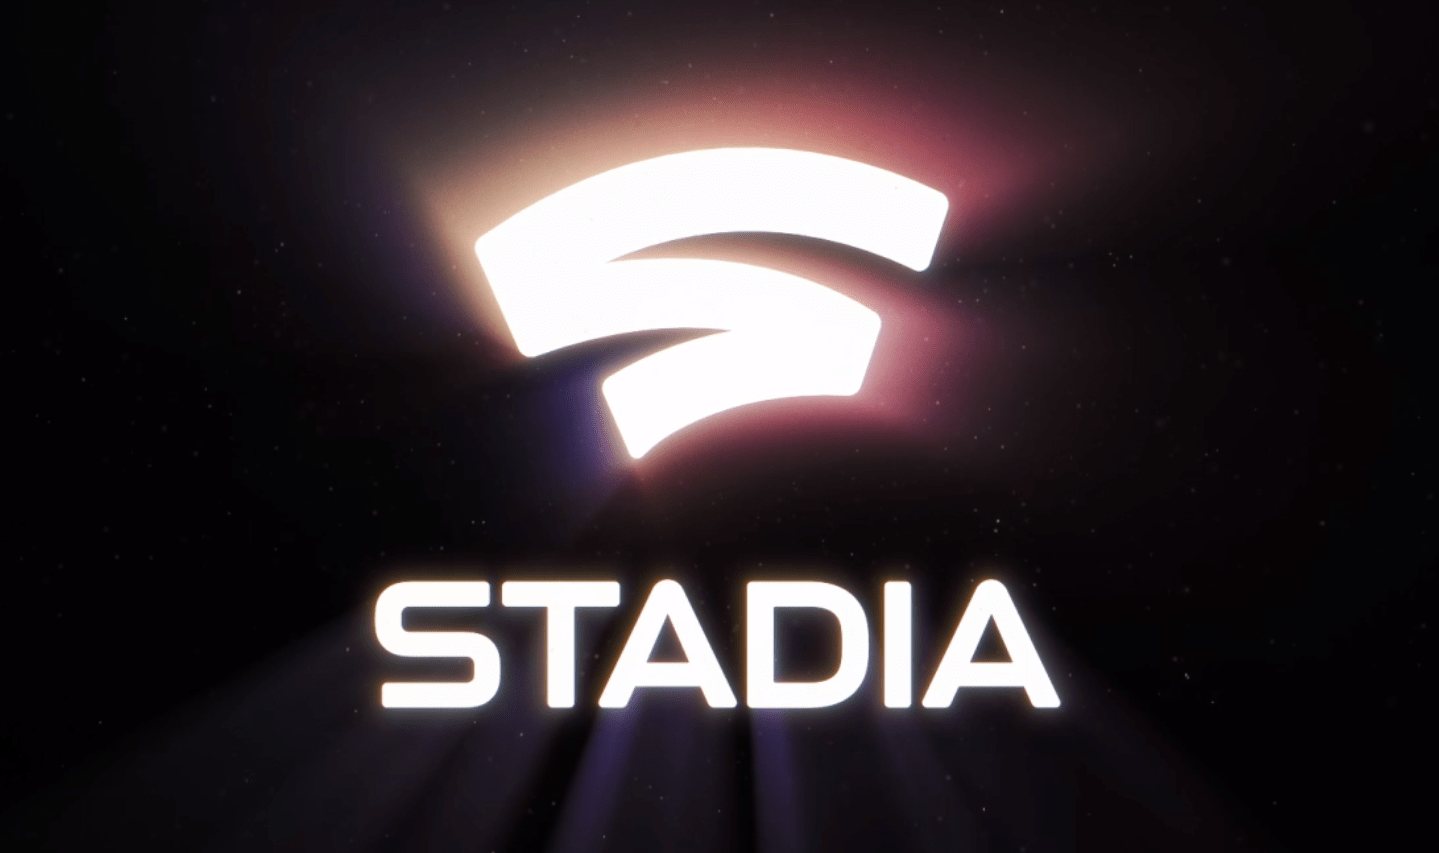 Google Announces Stadia, the all-device gaming platform.